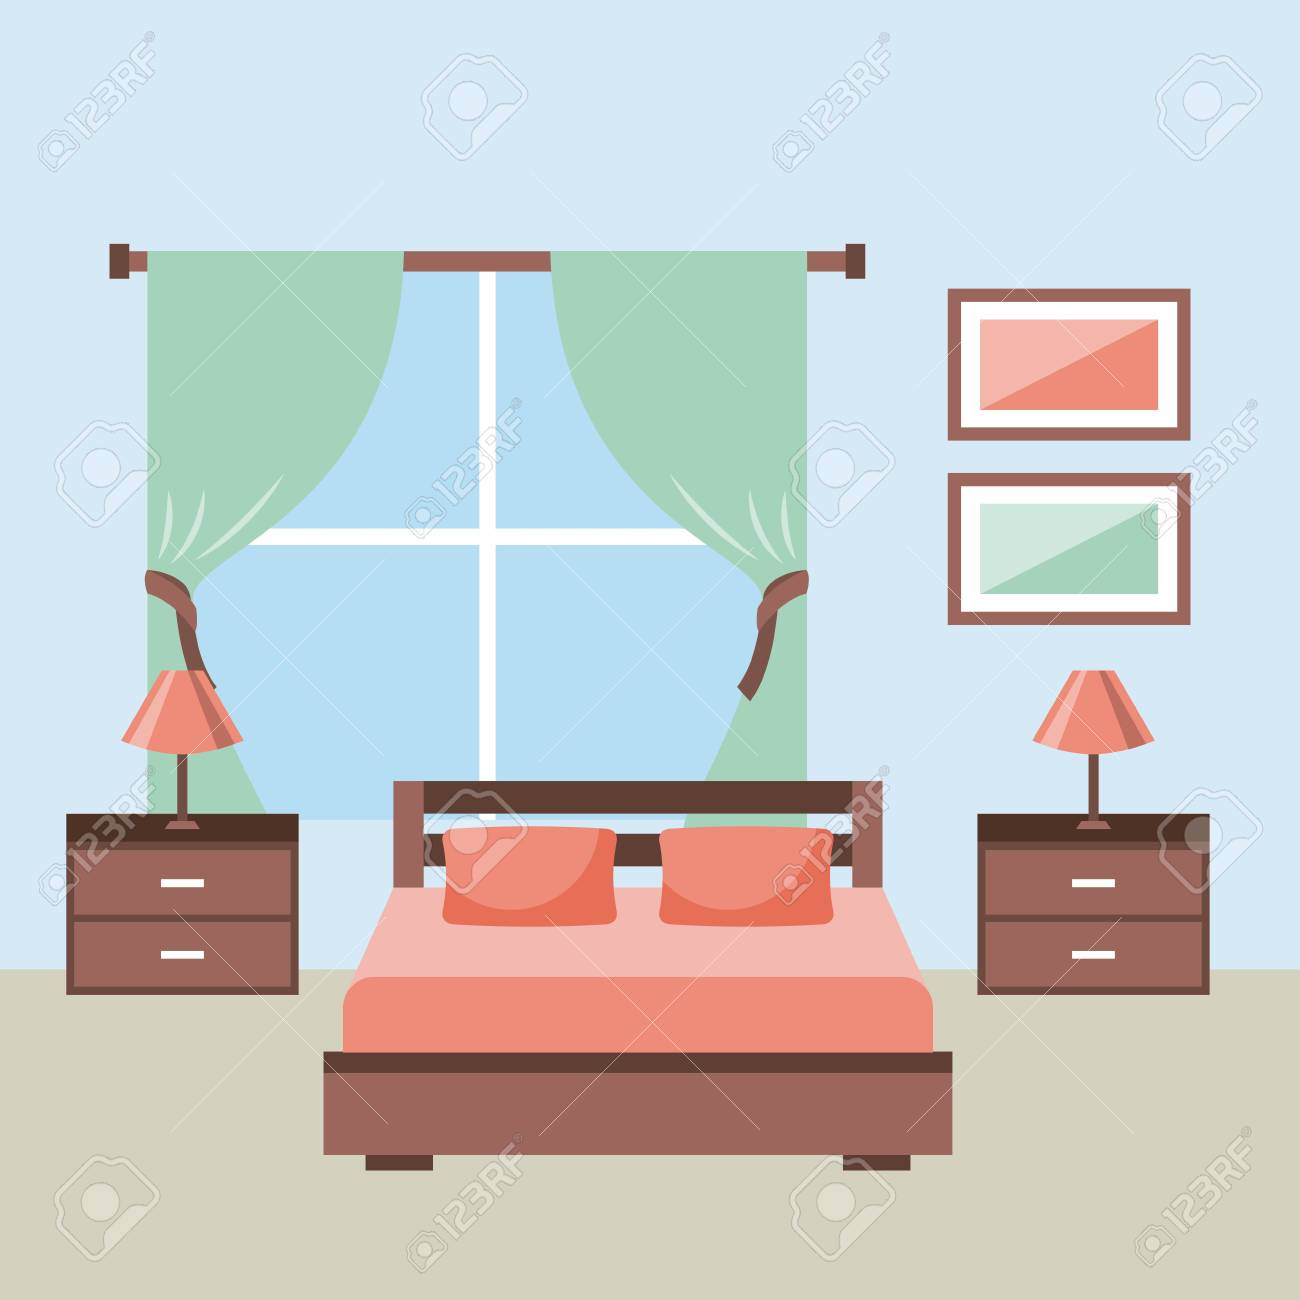 Picture of: Bedroom Interior With Furniture Bedside Table Lamp Frame Window Royalty Free Cliparts Vectors And Stock Illustration Image 85621652